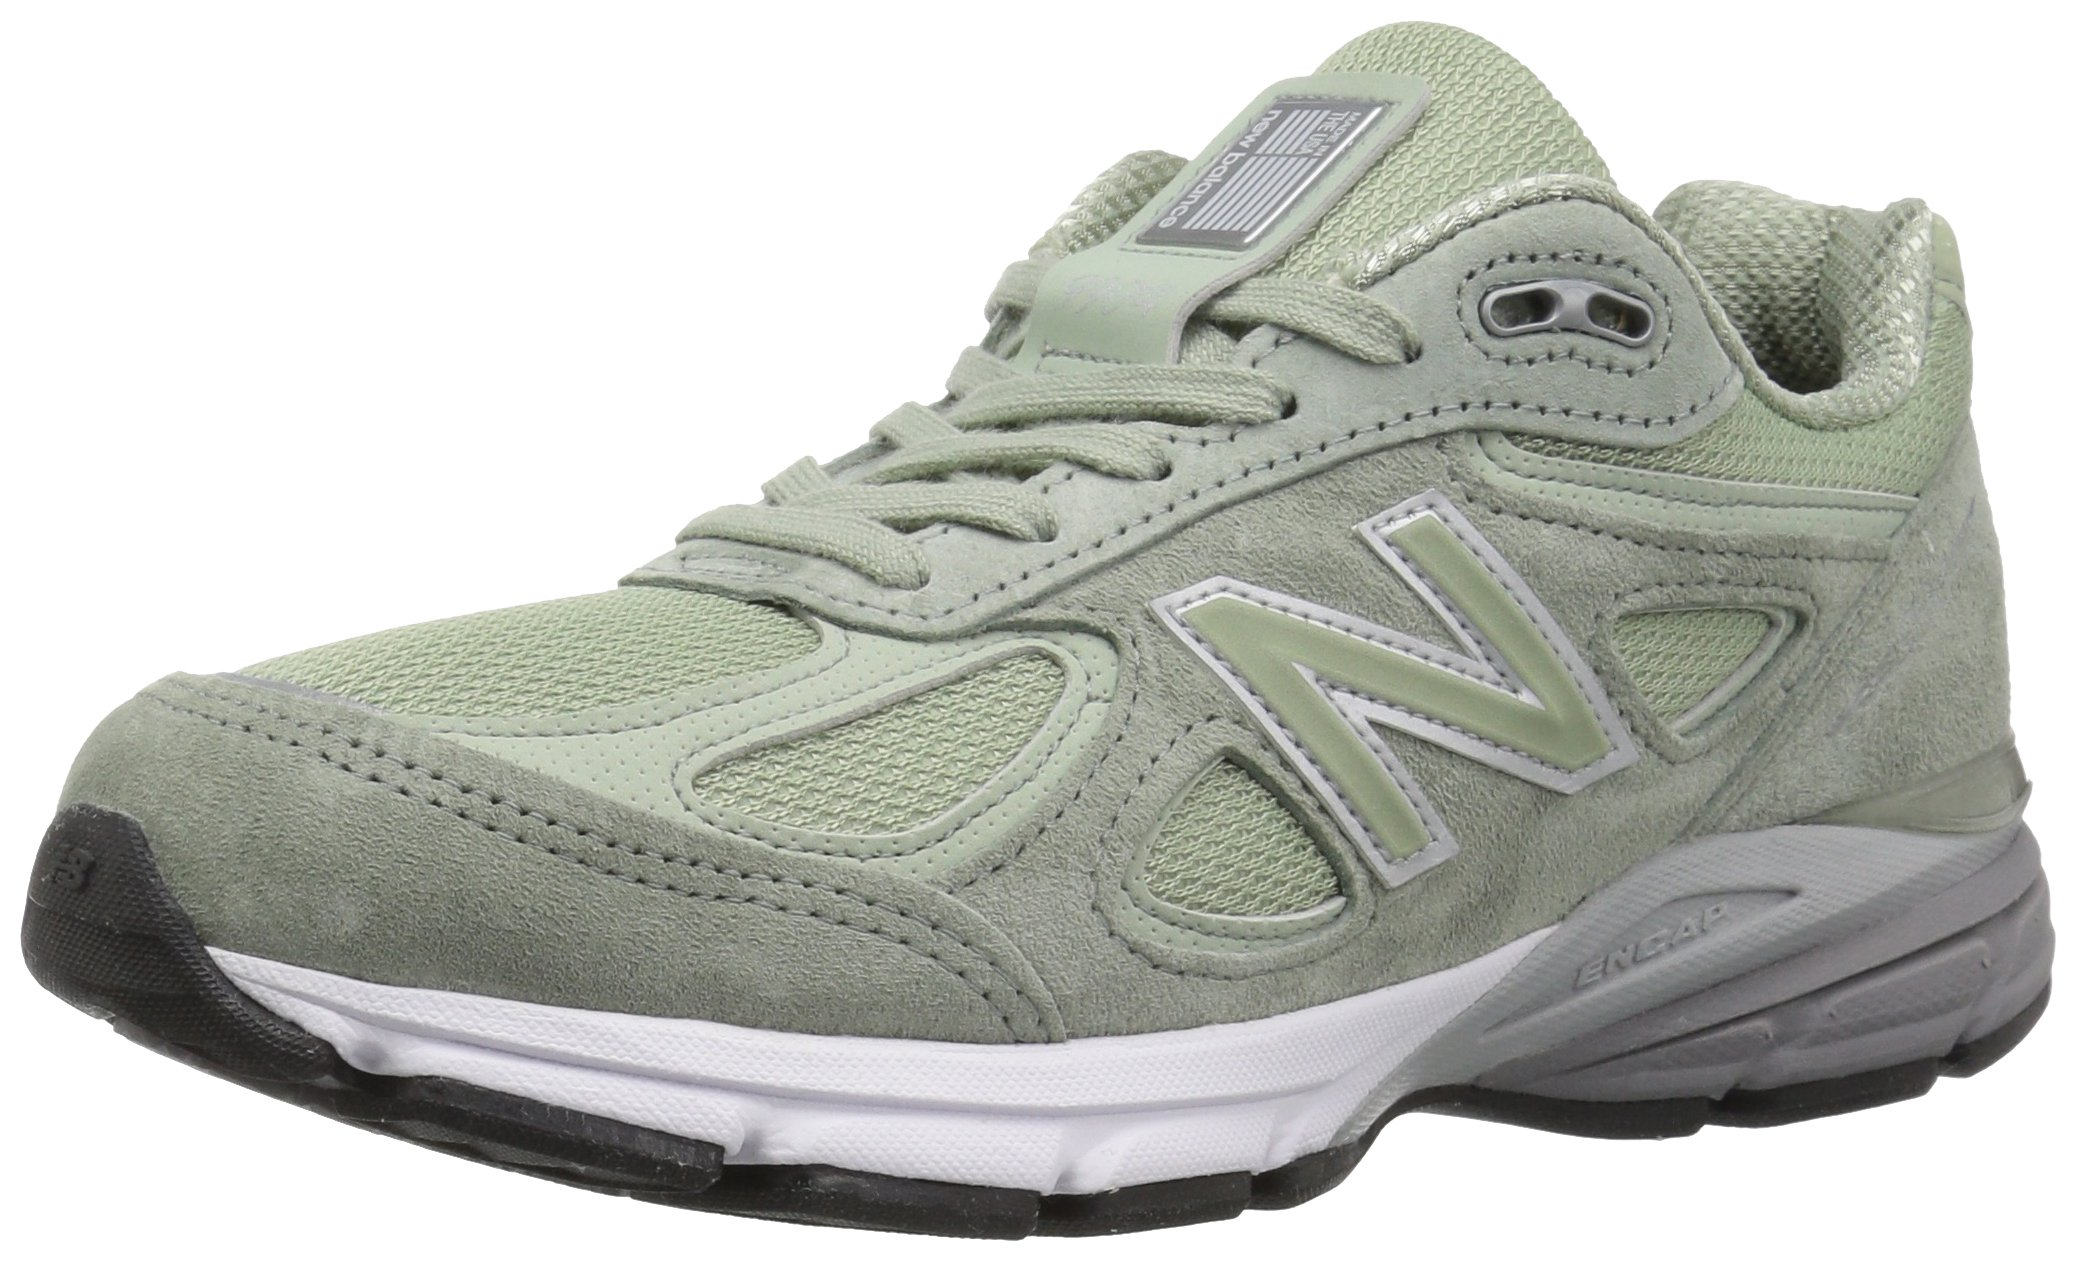 Details about New Balance W990SM4: Women's 990v4 Silver Mint Running Shoe